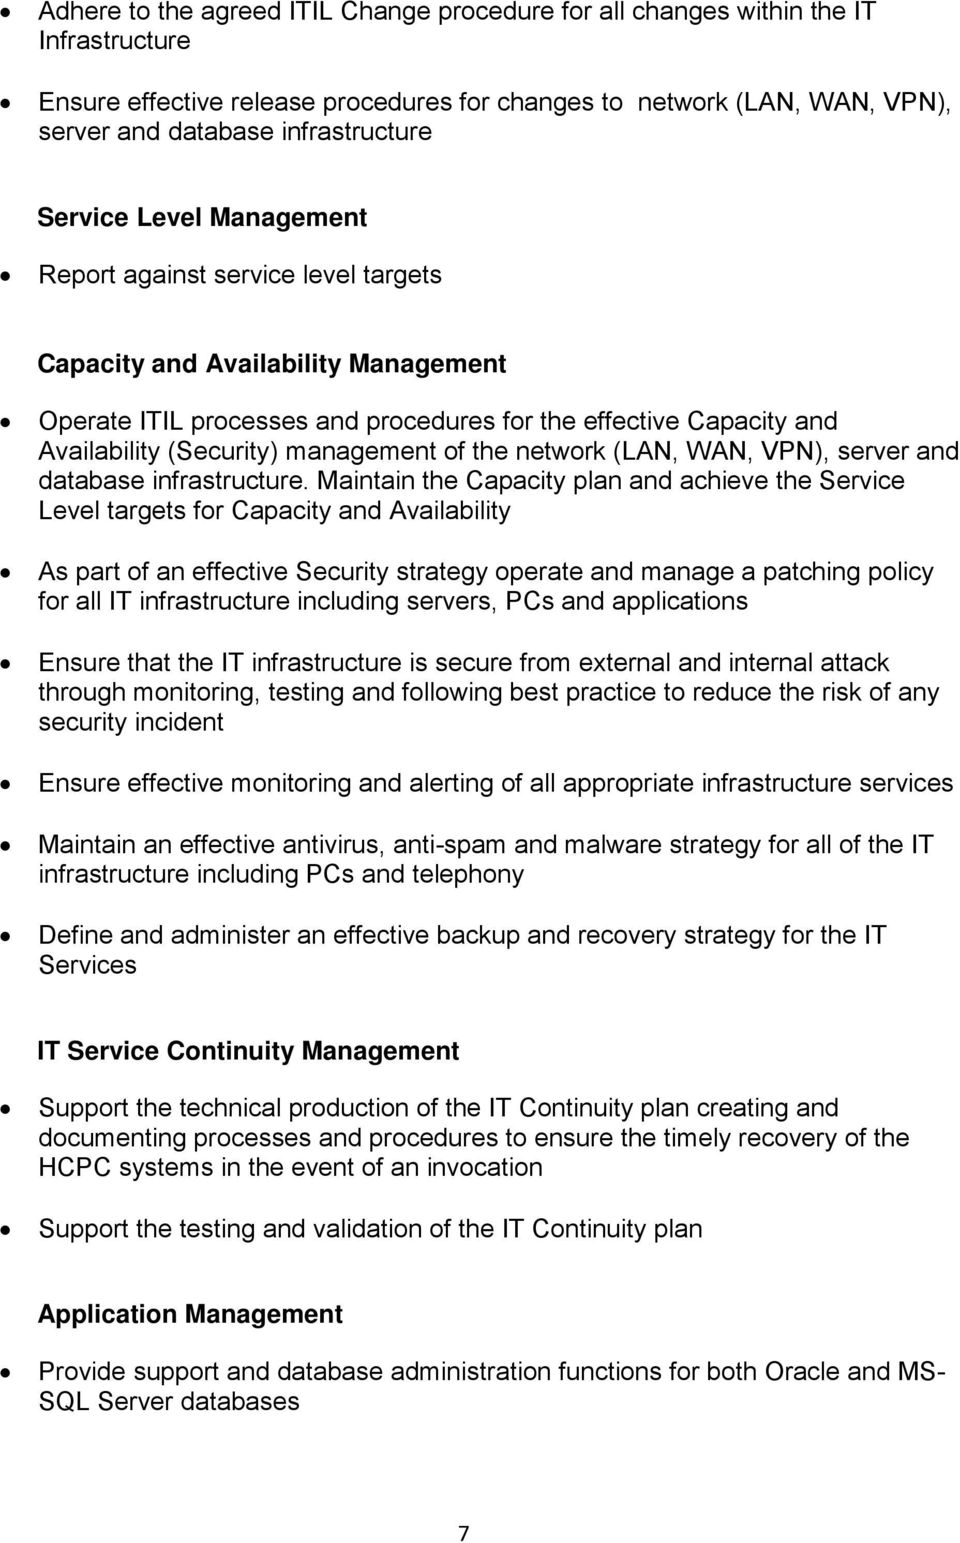 management of the network (LAN, WAN, VPN), server and database infrastructure.